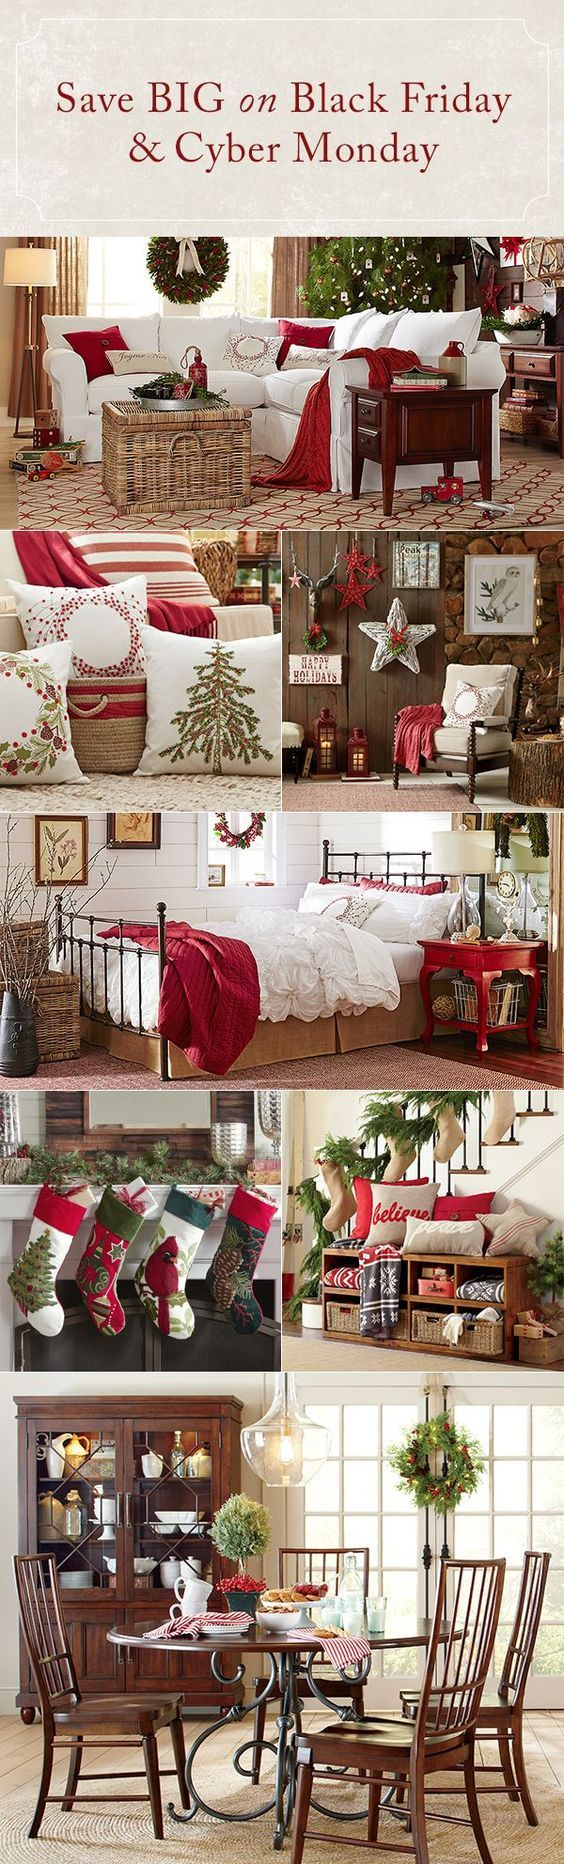 Simple decor switches are key when it comes to making holiday decorating a stress-free affair. Swap in accessories that have a festive color palette of red and green, embrace traditional motifs and designs, and don't forget to include plenty of cozy layers. From pillows and throws to stockings and wreaths,